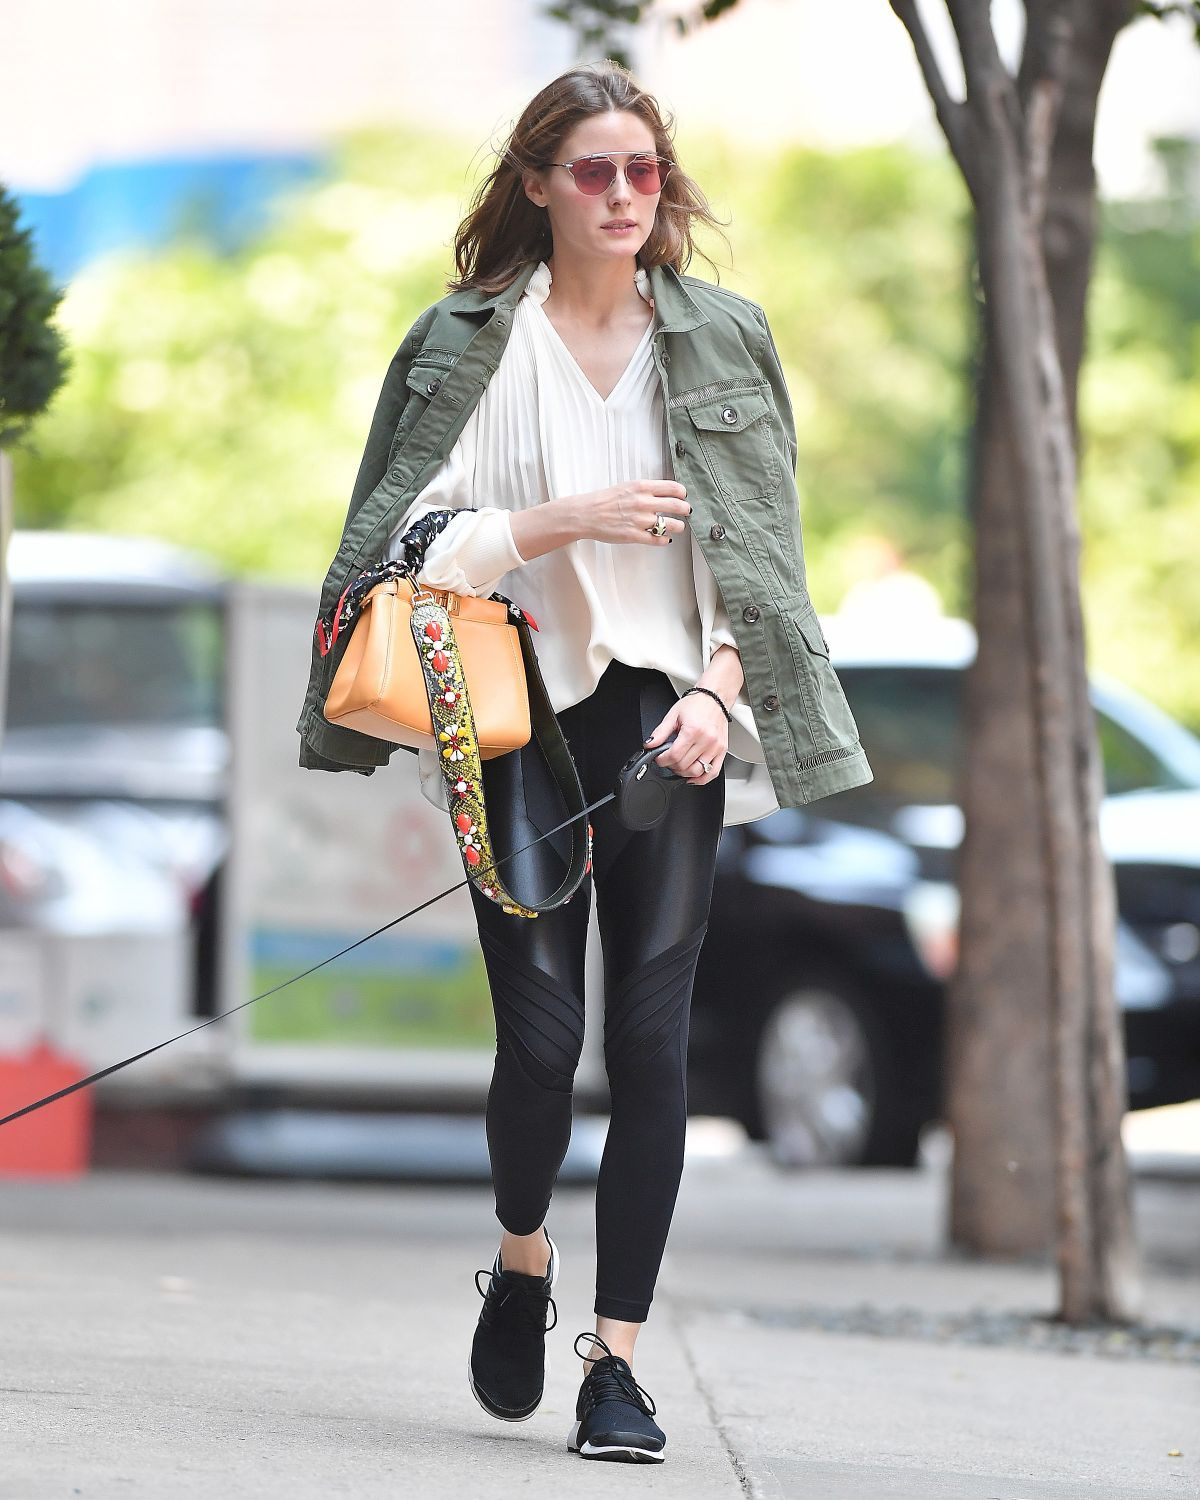 olivia palermo out with her dog in brooklyn 06/10/2017 | olivia